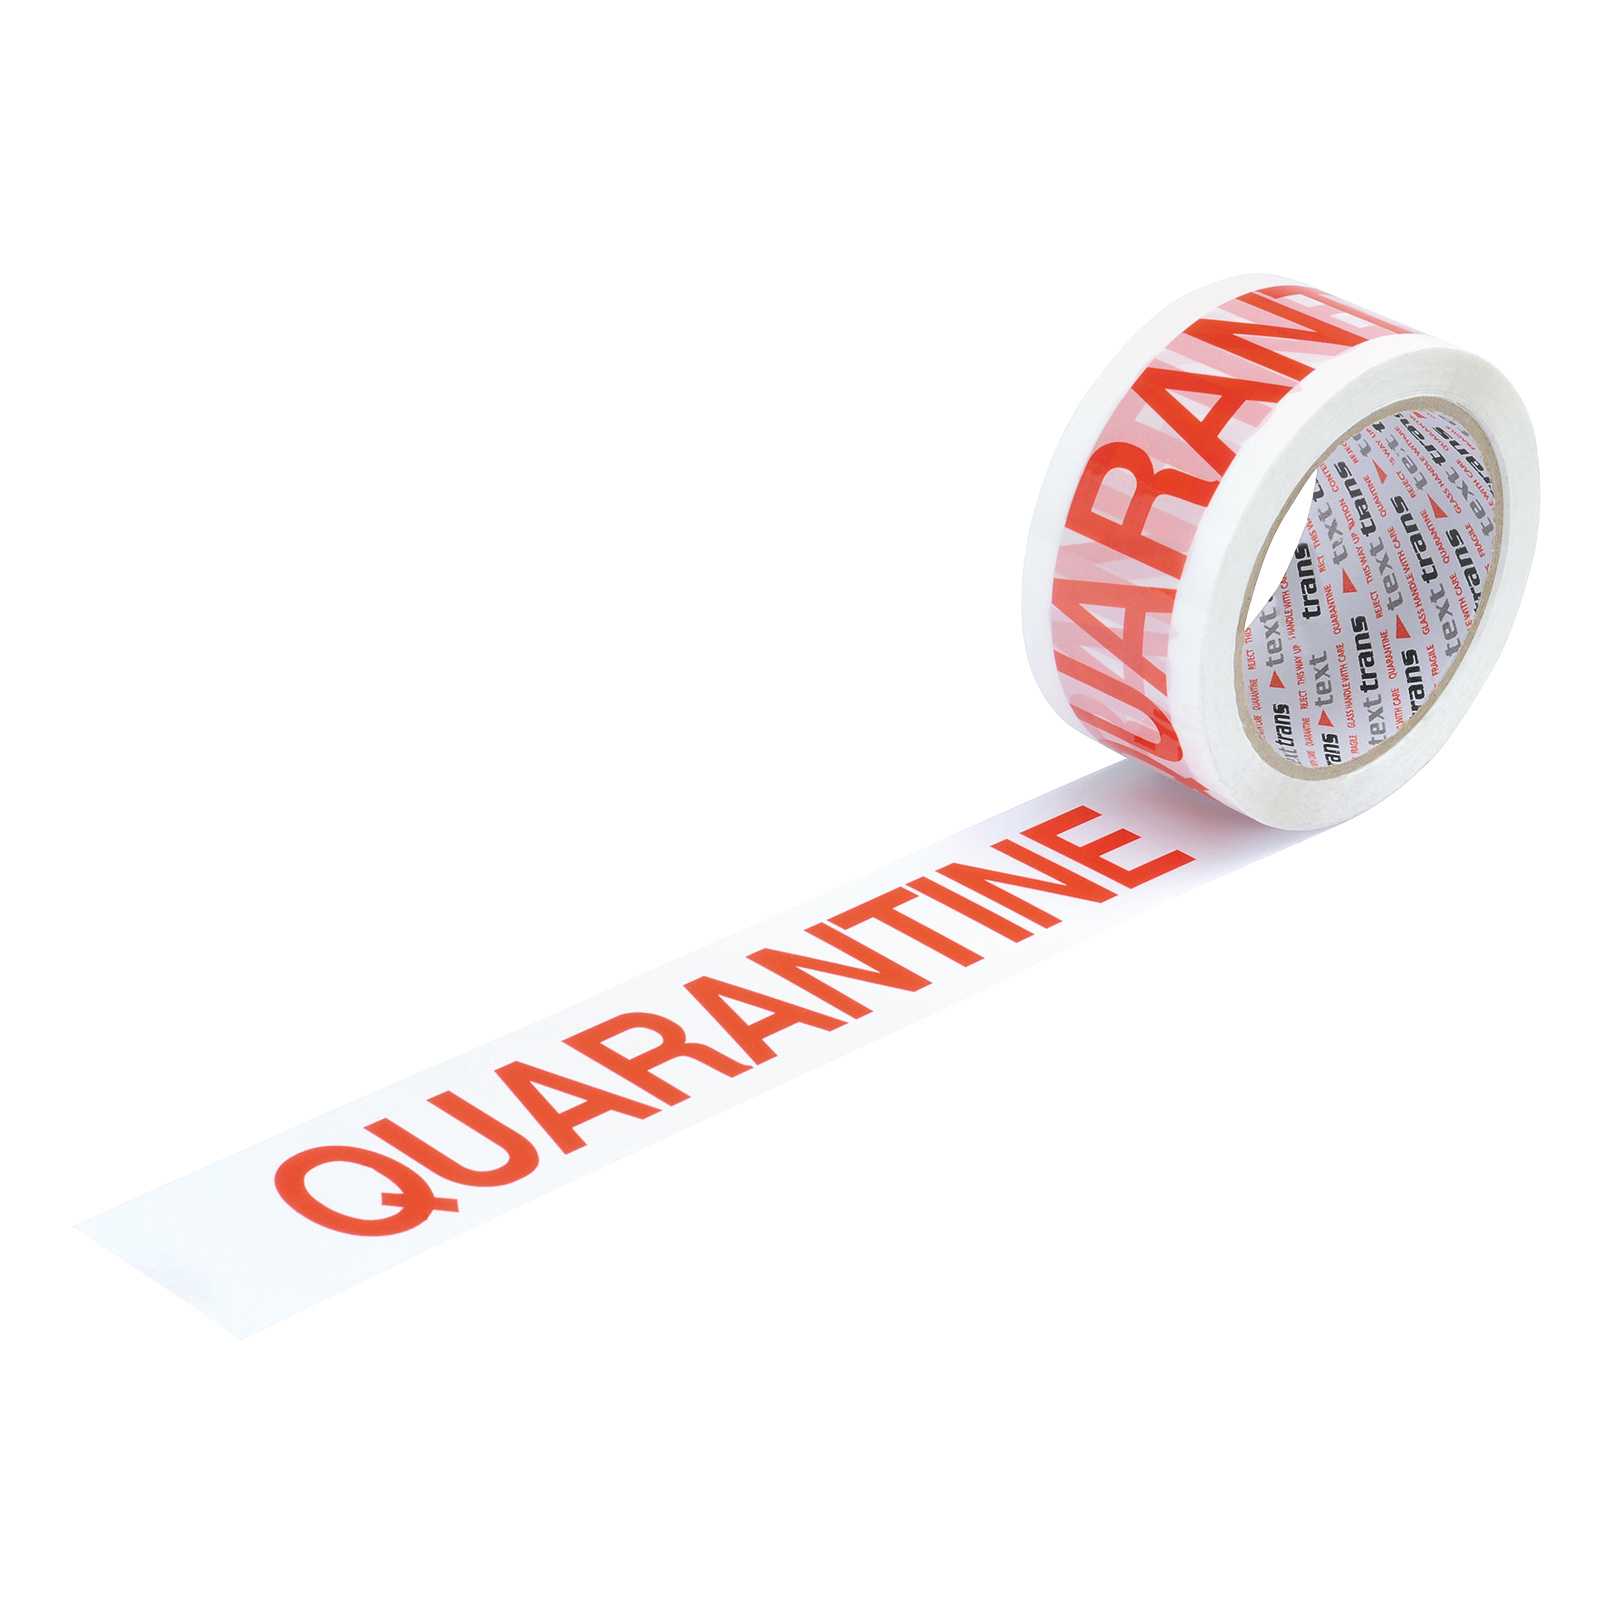 5 Star Office Printed Tape Quarantine Polypropylene 48mm x 66m Red on White [Pack 6]